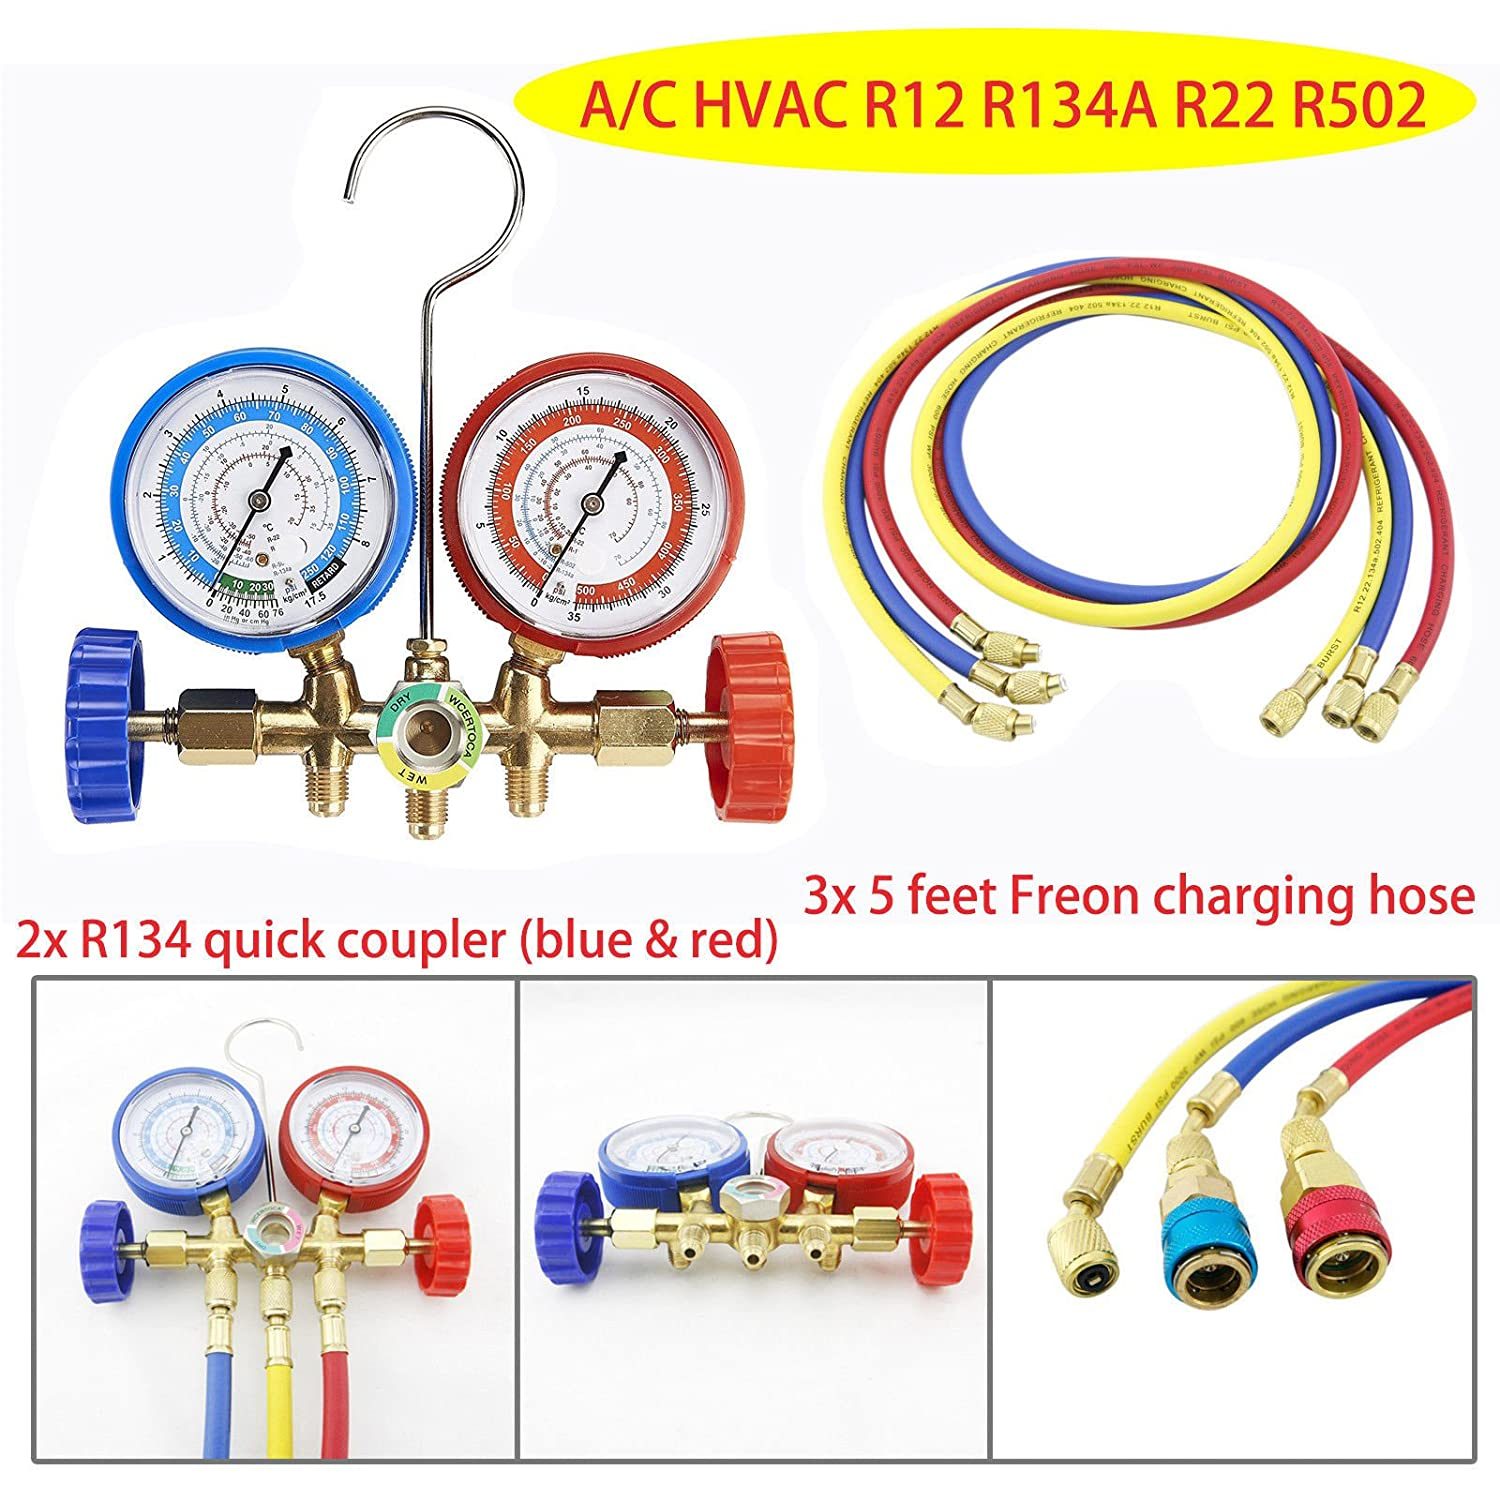 9TRADING R12 R22 R502 R134A Manifold Gauge Set 5ft Hose Quick Coupler Refrigeration ACME, Free Tax, Delivered within 10 days